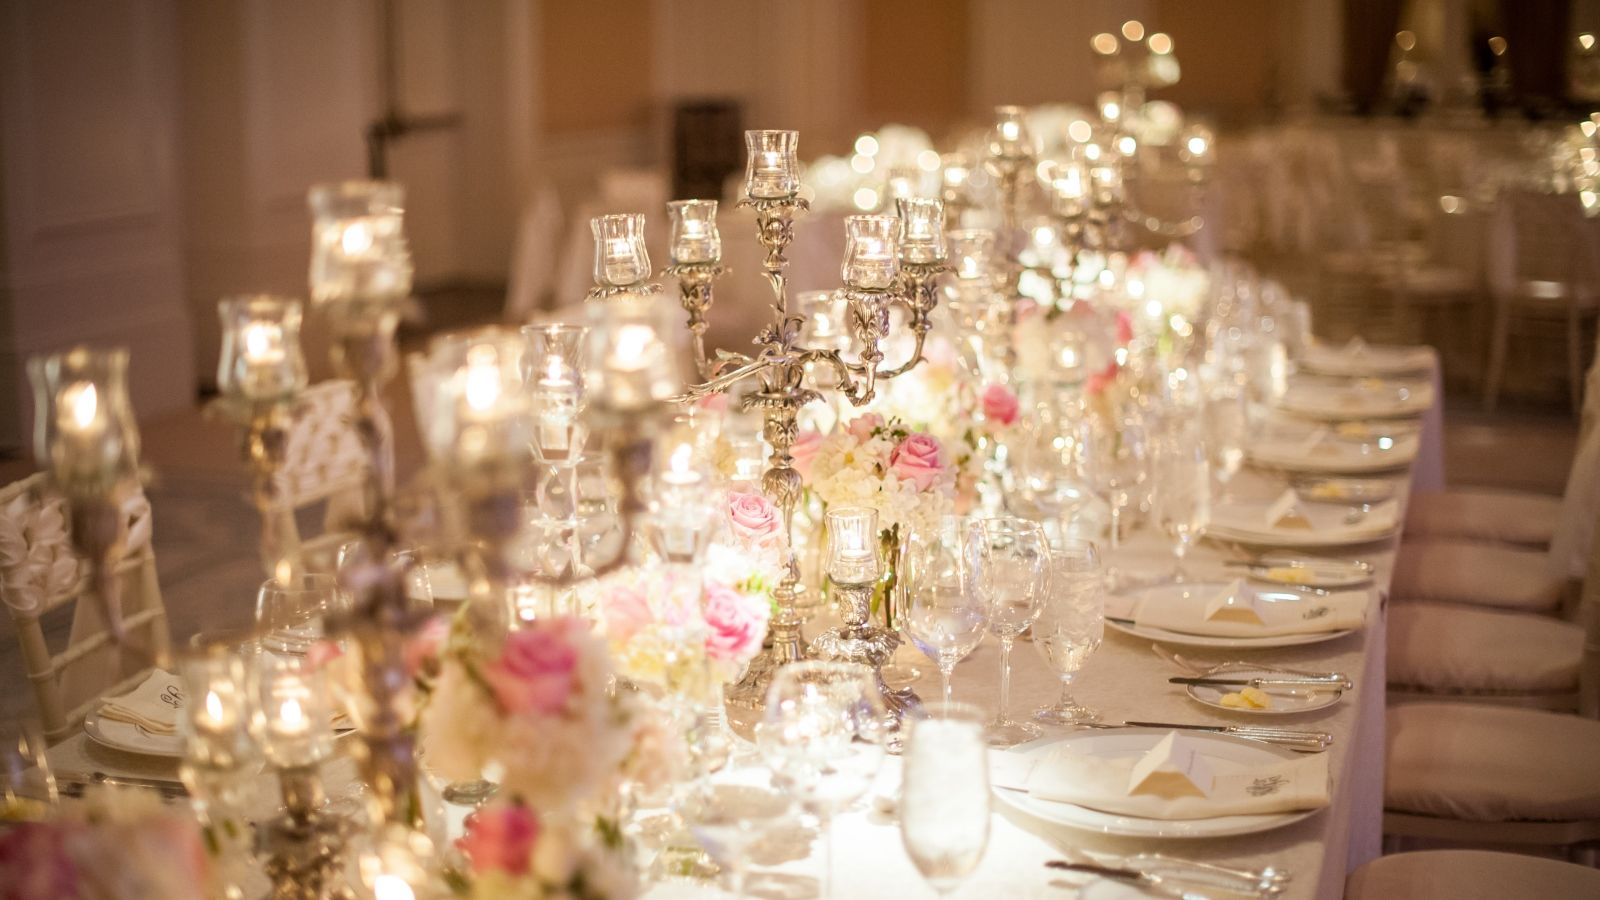 Wedding Reception Venues in Buckhead Atlanta - The St. Regis Atlanta